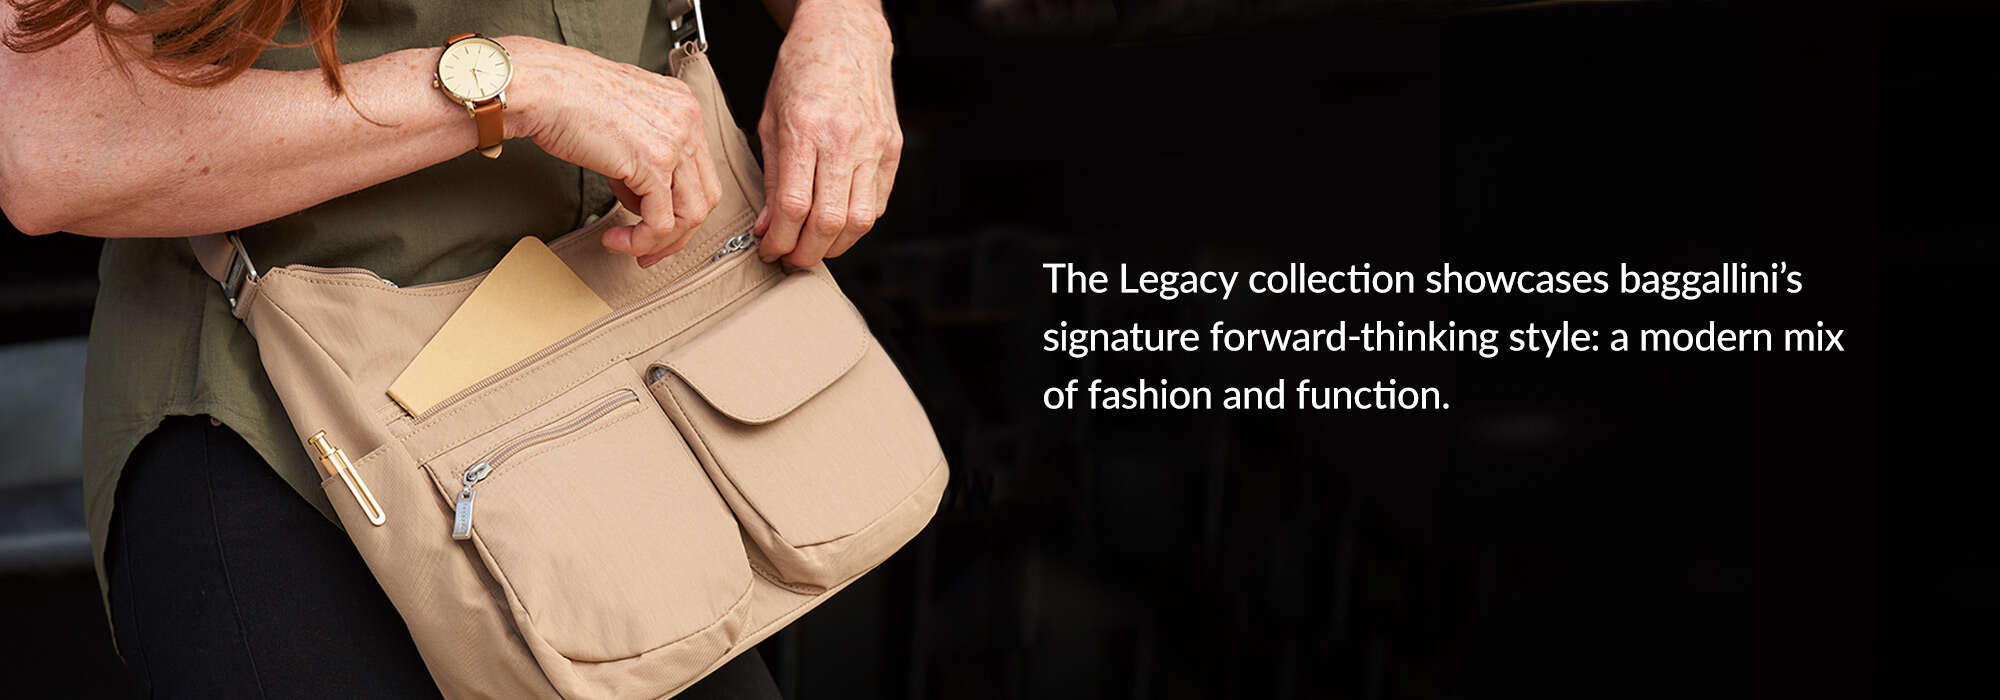 Flagship fashion. The Legacy collection showcases baggallini's signature forward-thinking style: a modern mix of fashion and function.